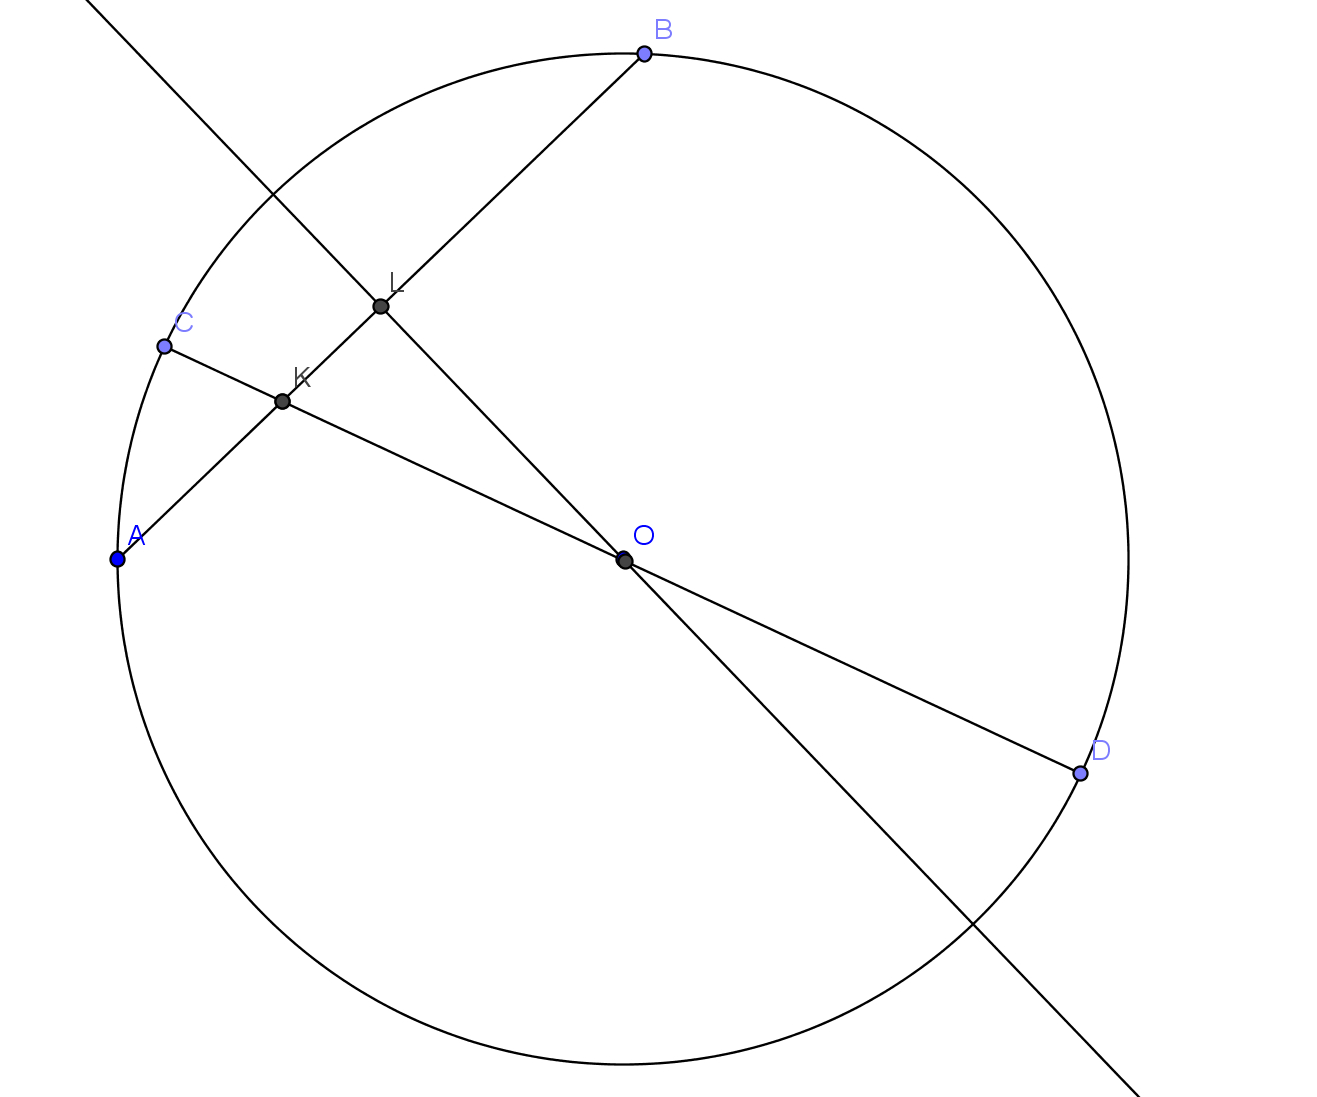 Chord Of A Circle Geometry Find A Line Orthogonal To A Chord Of A Circle